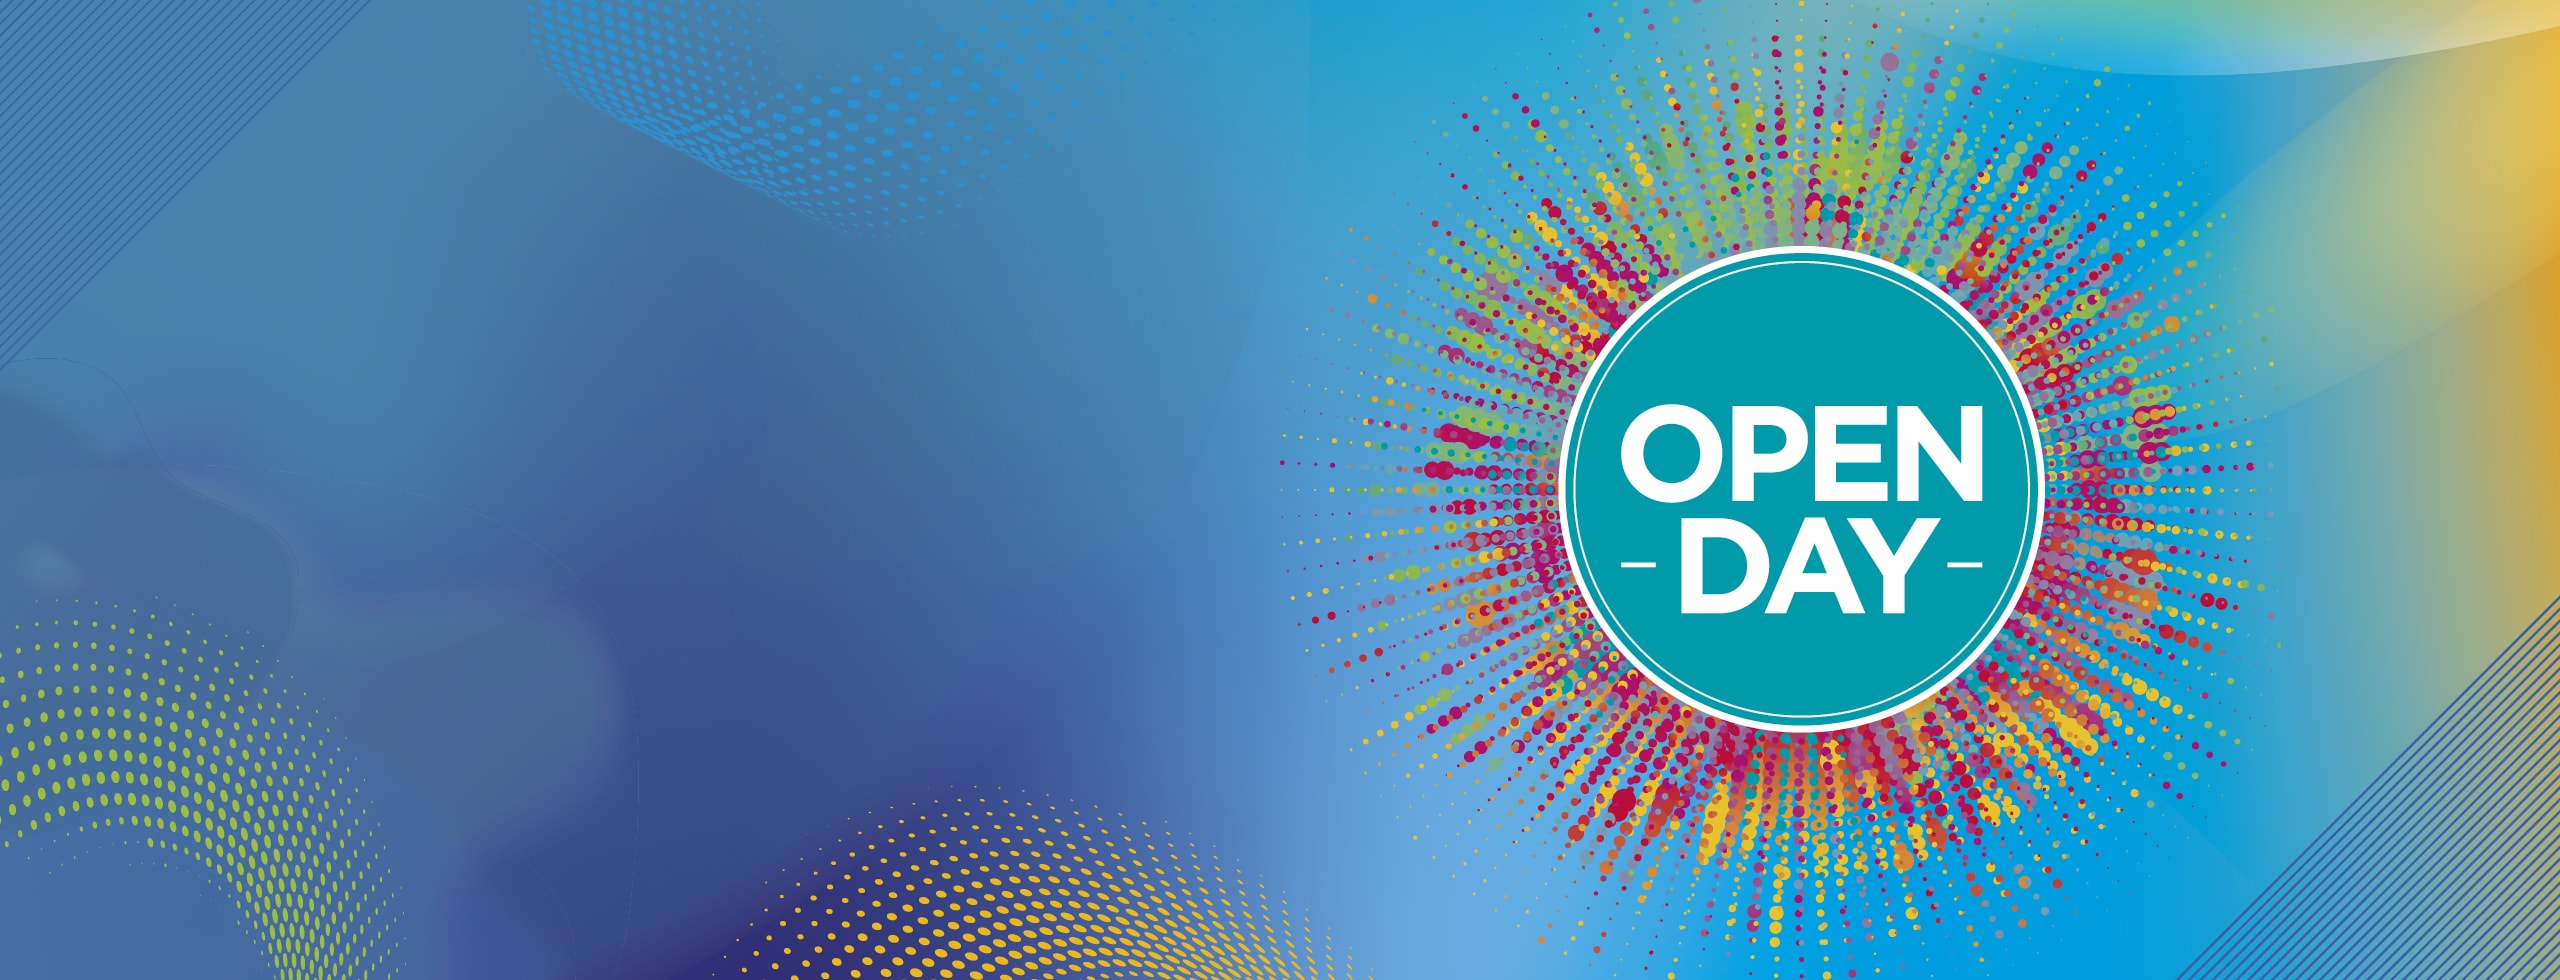 Open Day 2018 2560x980